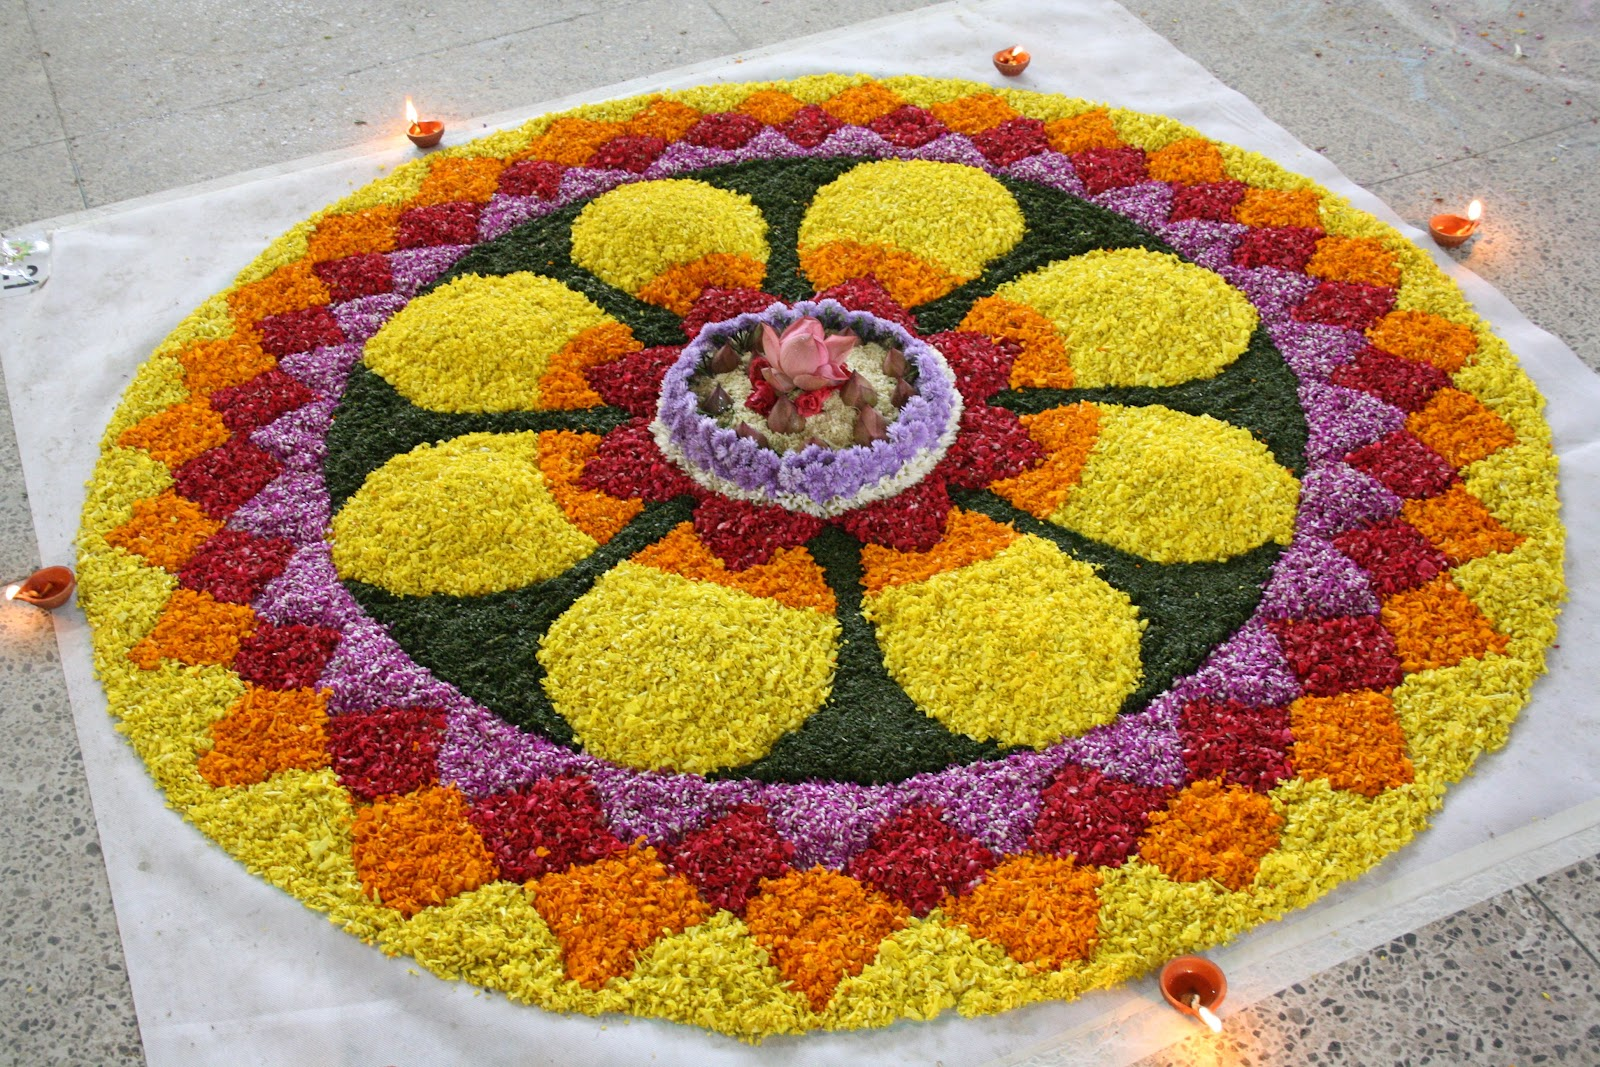 Shutter Treat.: Attappokkalam (Flower Carpet)